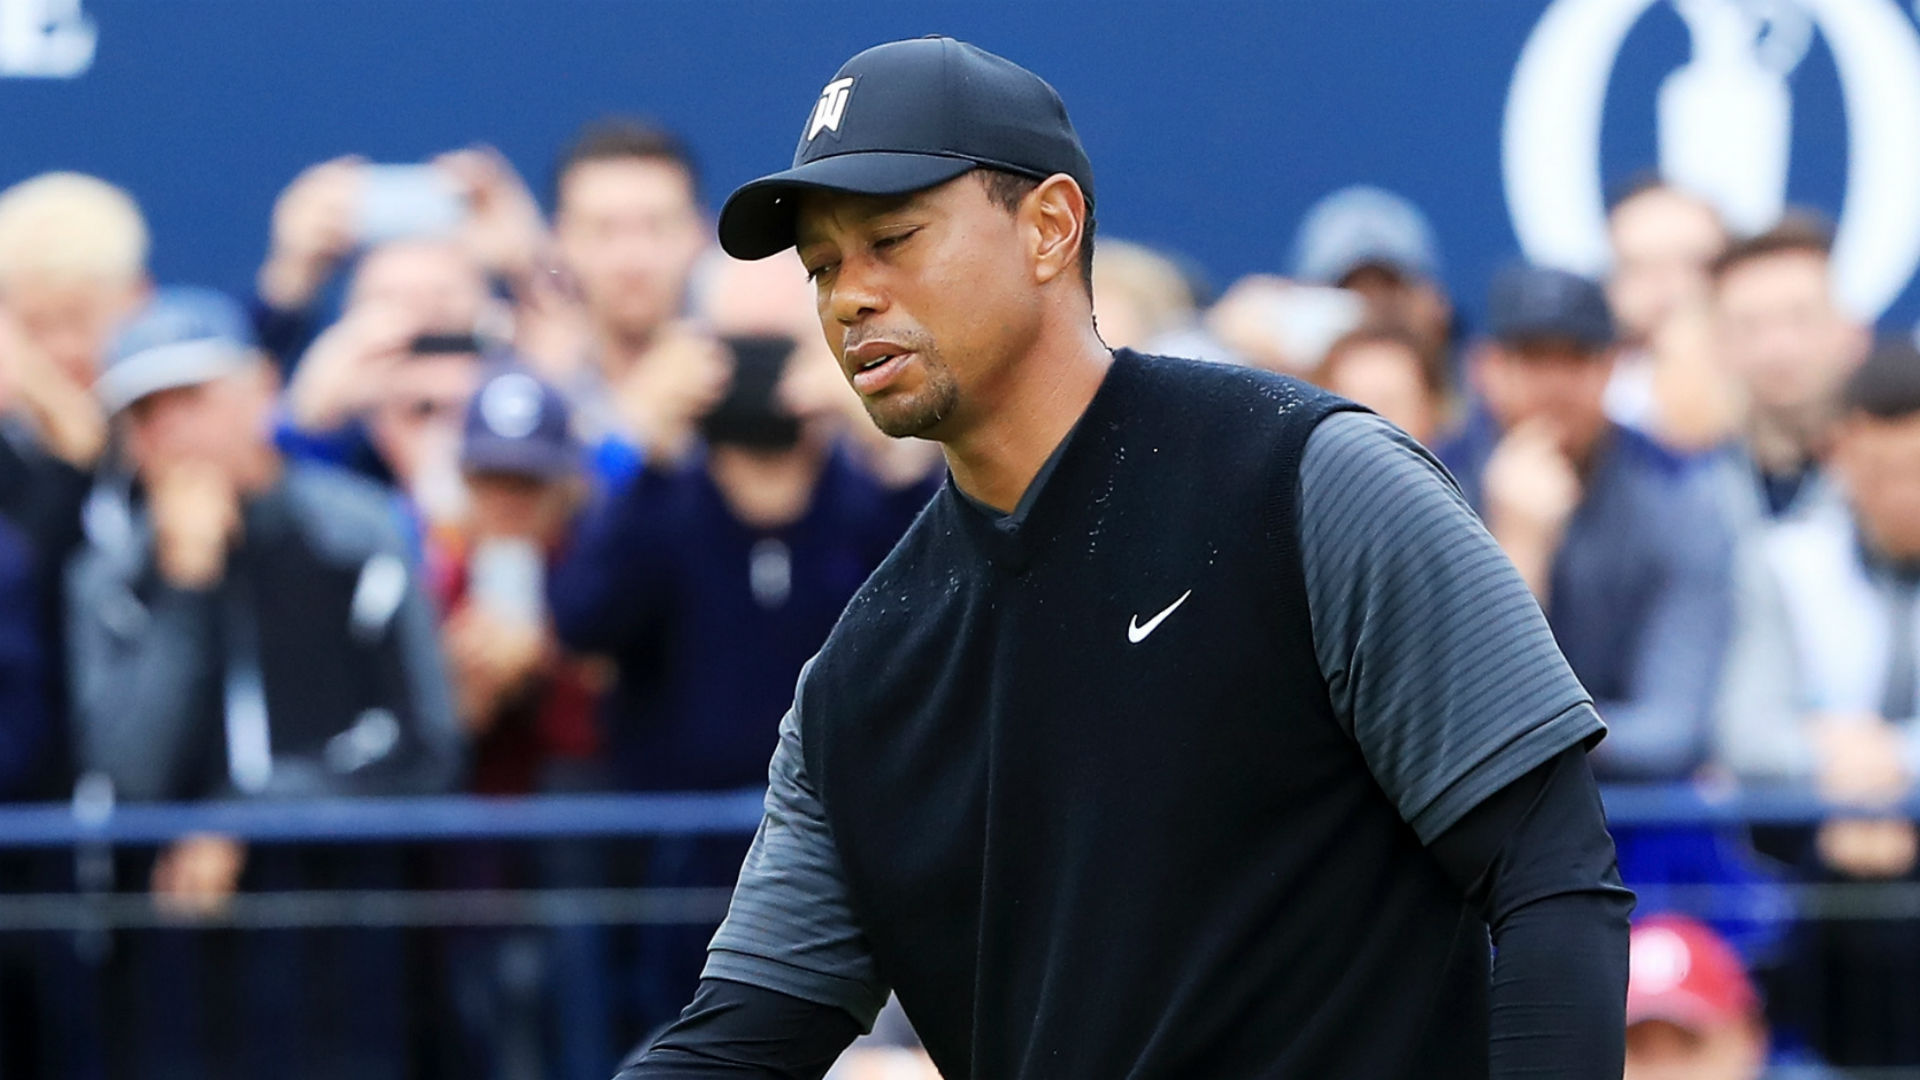 Tiger Woods in contention at Carnoustie